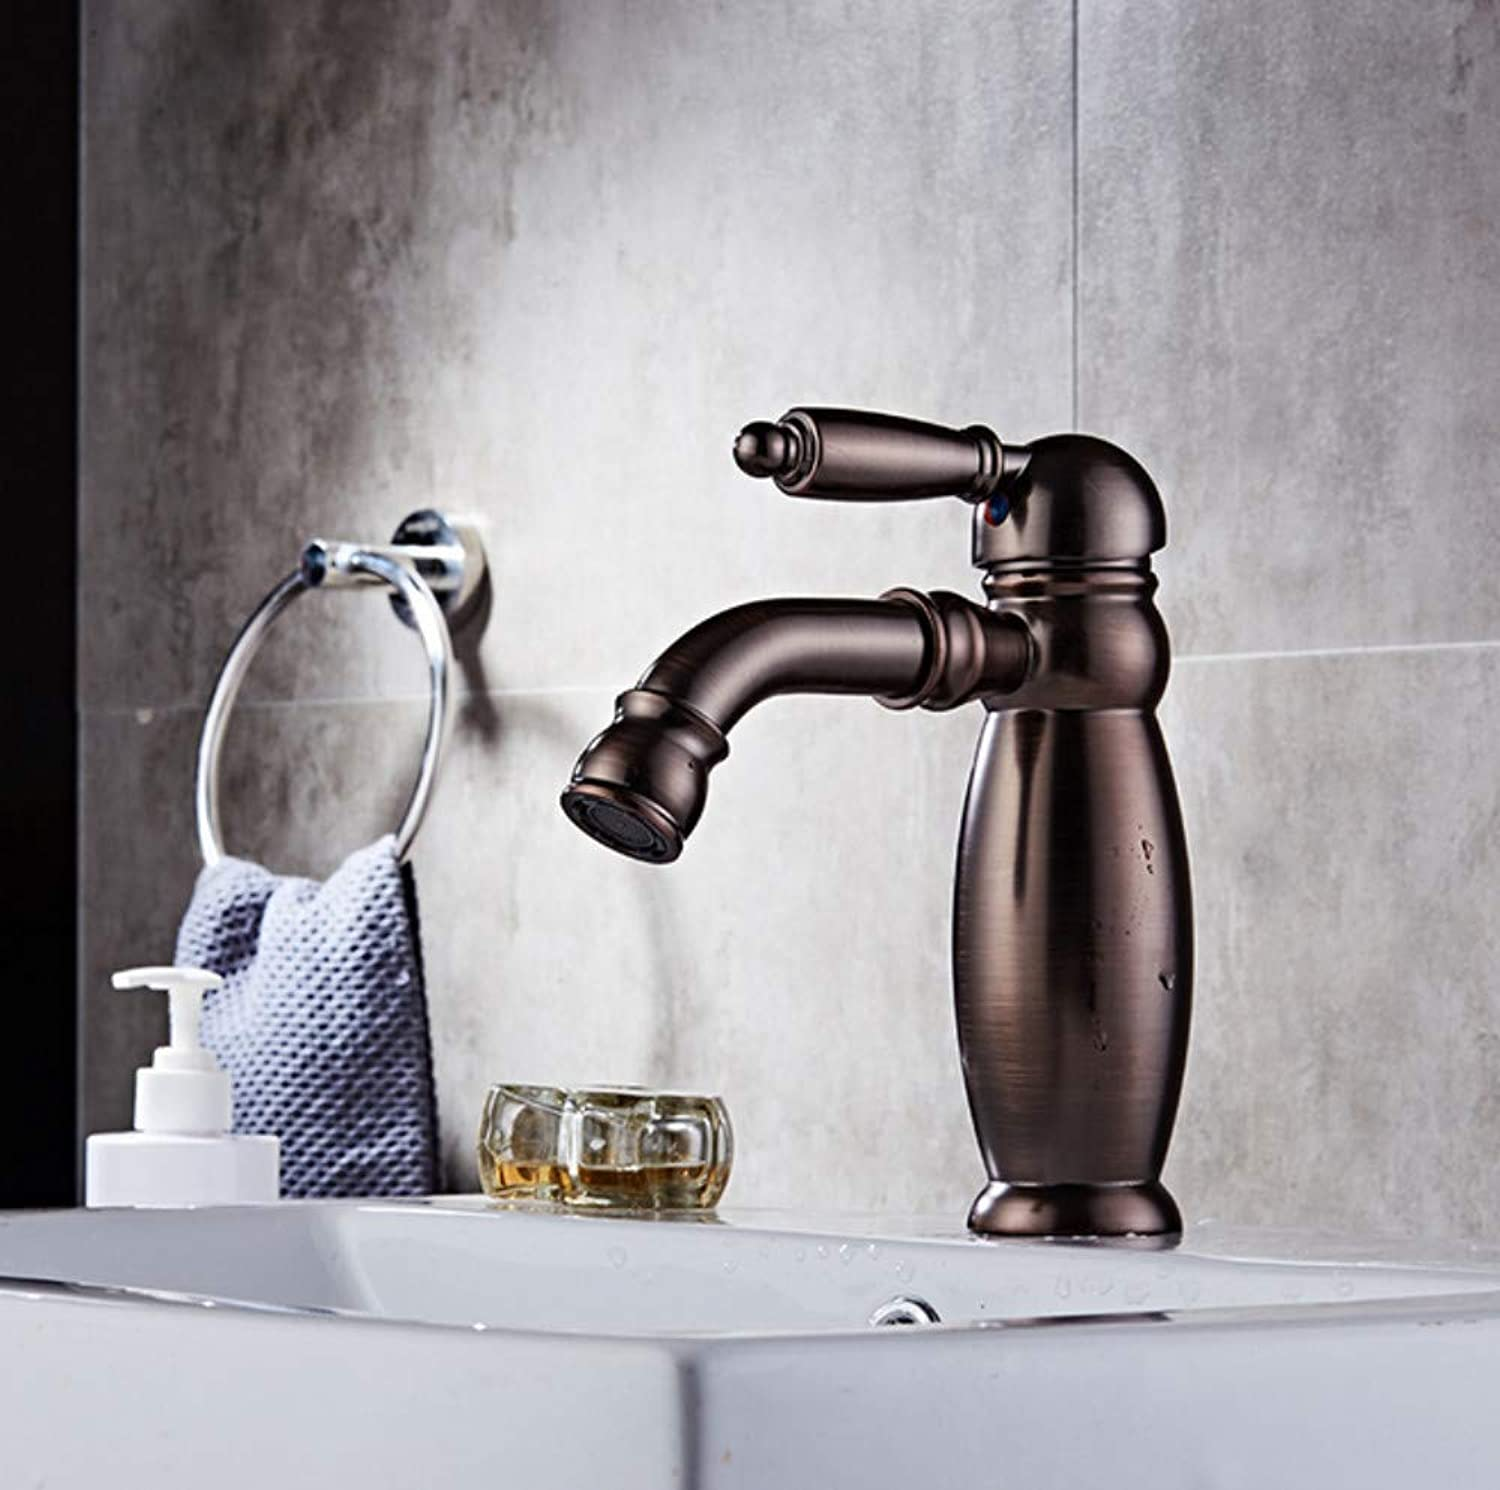 Ink basin faucet mixer water tap, Oil Rubbed Bronze bathroom wash basin faucets, Copper basin faucet hot and cold